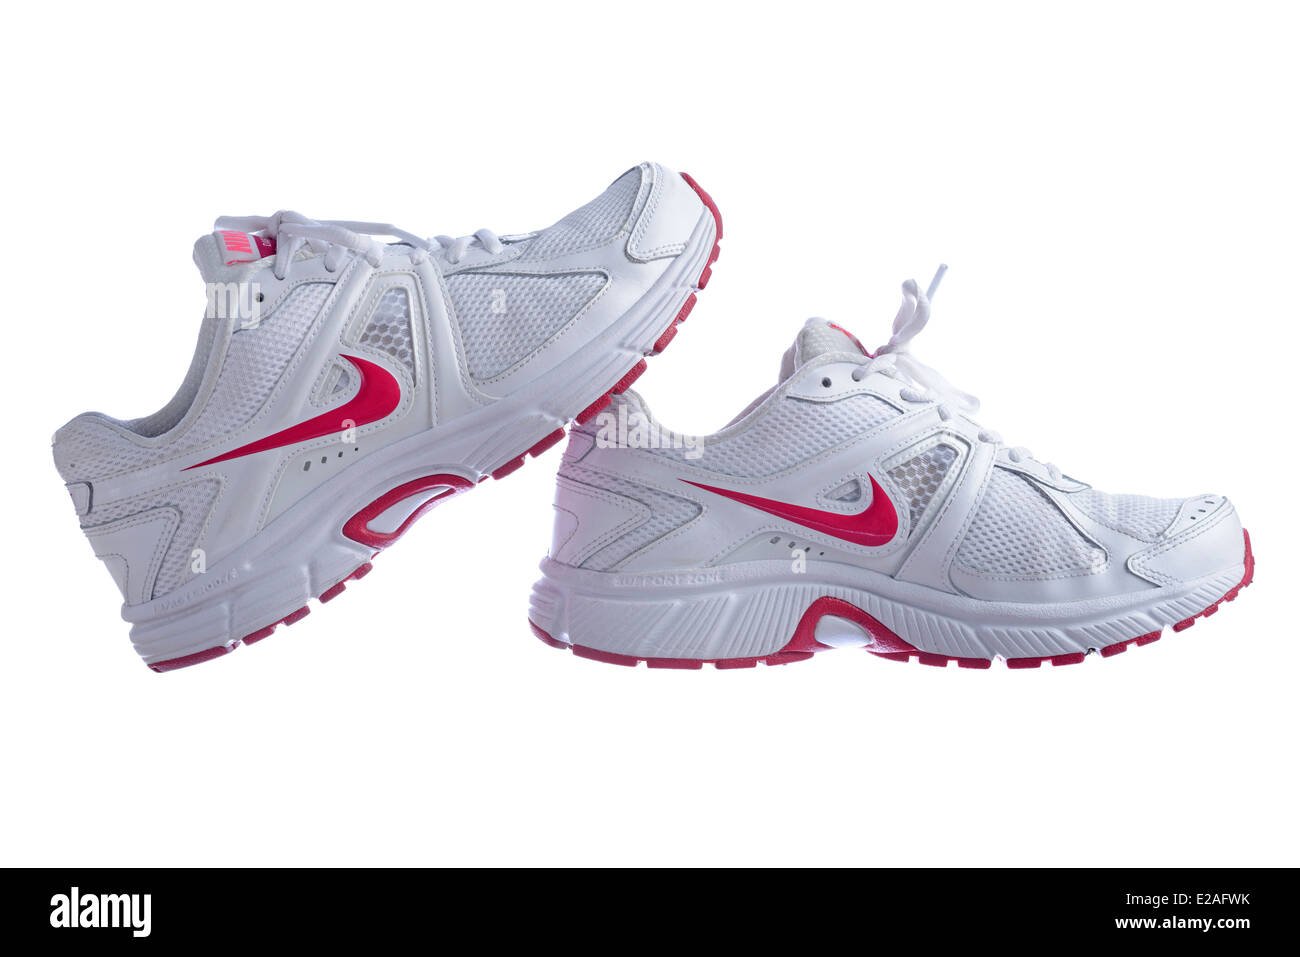 raíz debajo álbum de recortes  White Nike Dart 9 running shoes isolated on white background Stock Photo -  Alamy